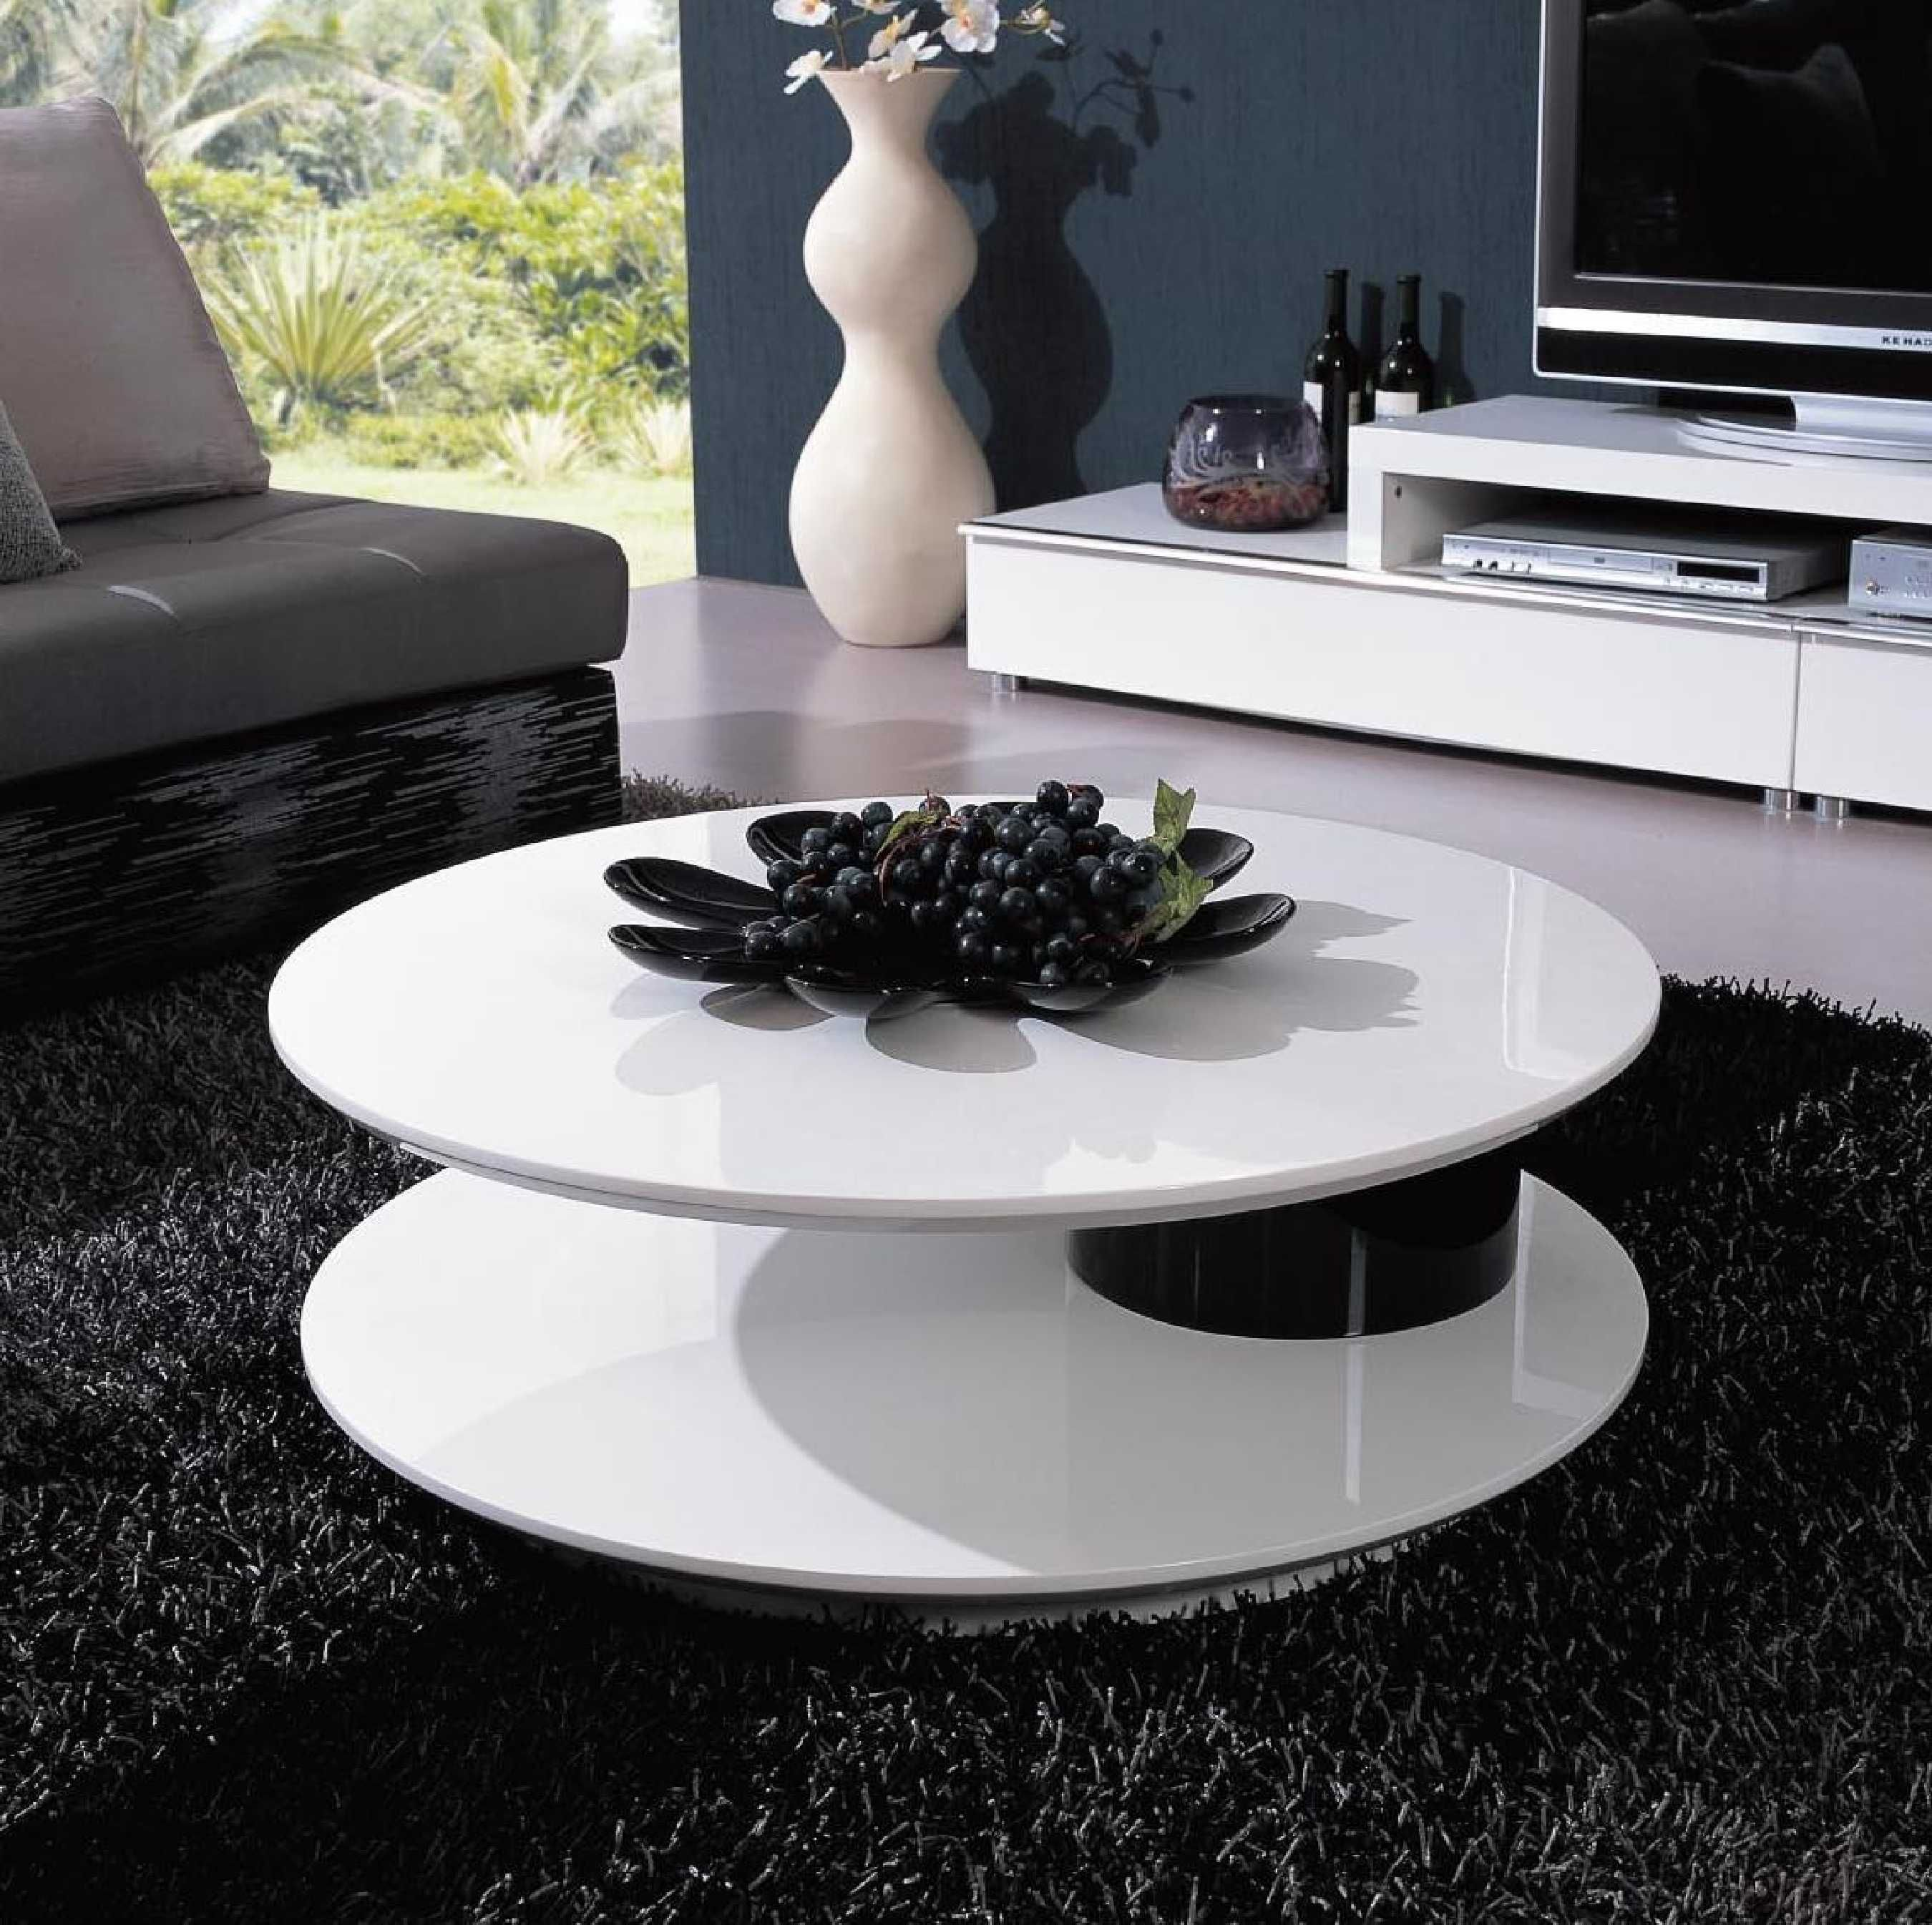 Why To Buy White Table For Your Living Room Coffee Tables Furniture Round Coffee Table Modern White Round Coffee Table Coffee Table White [ 2690 x 2700 Pixel ]